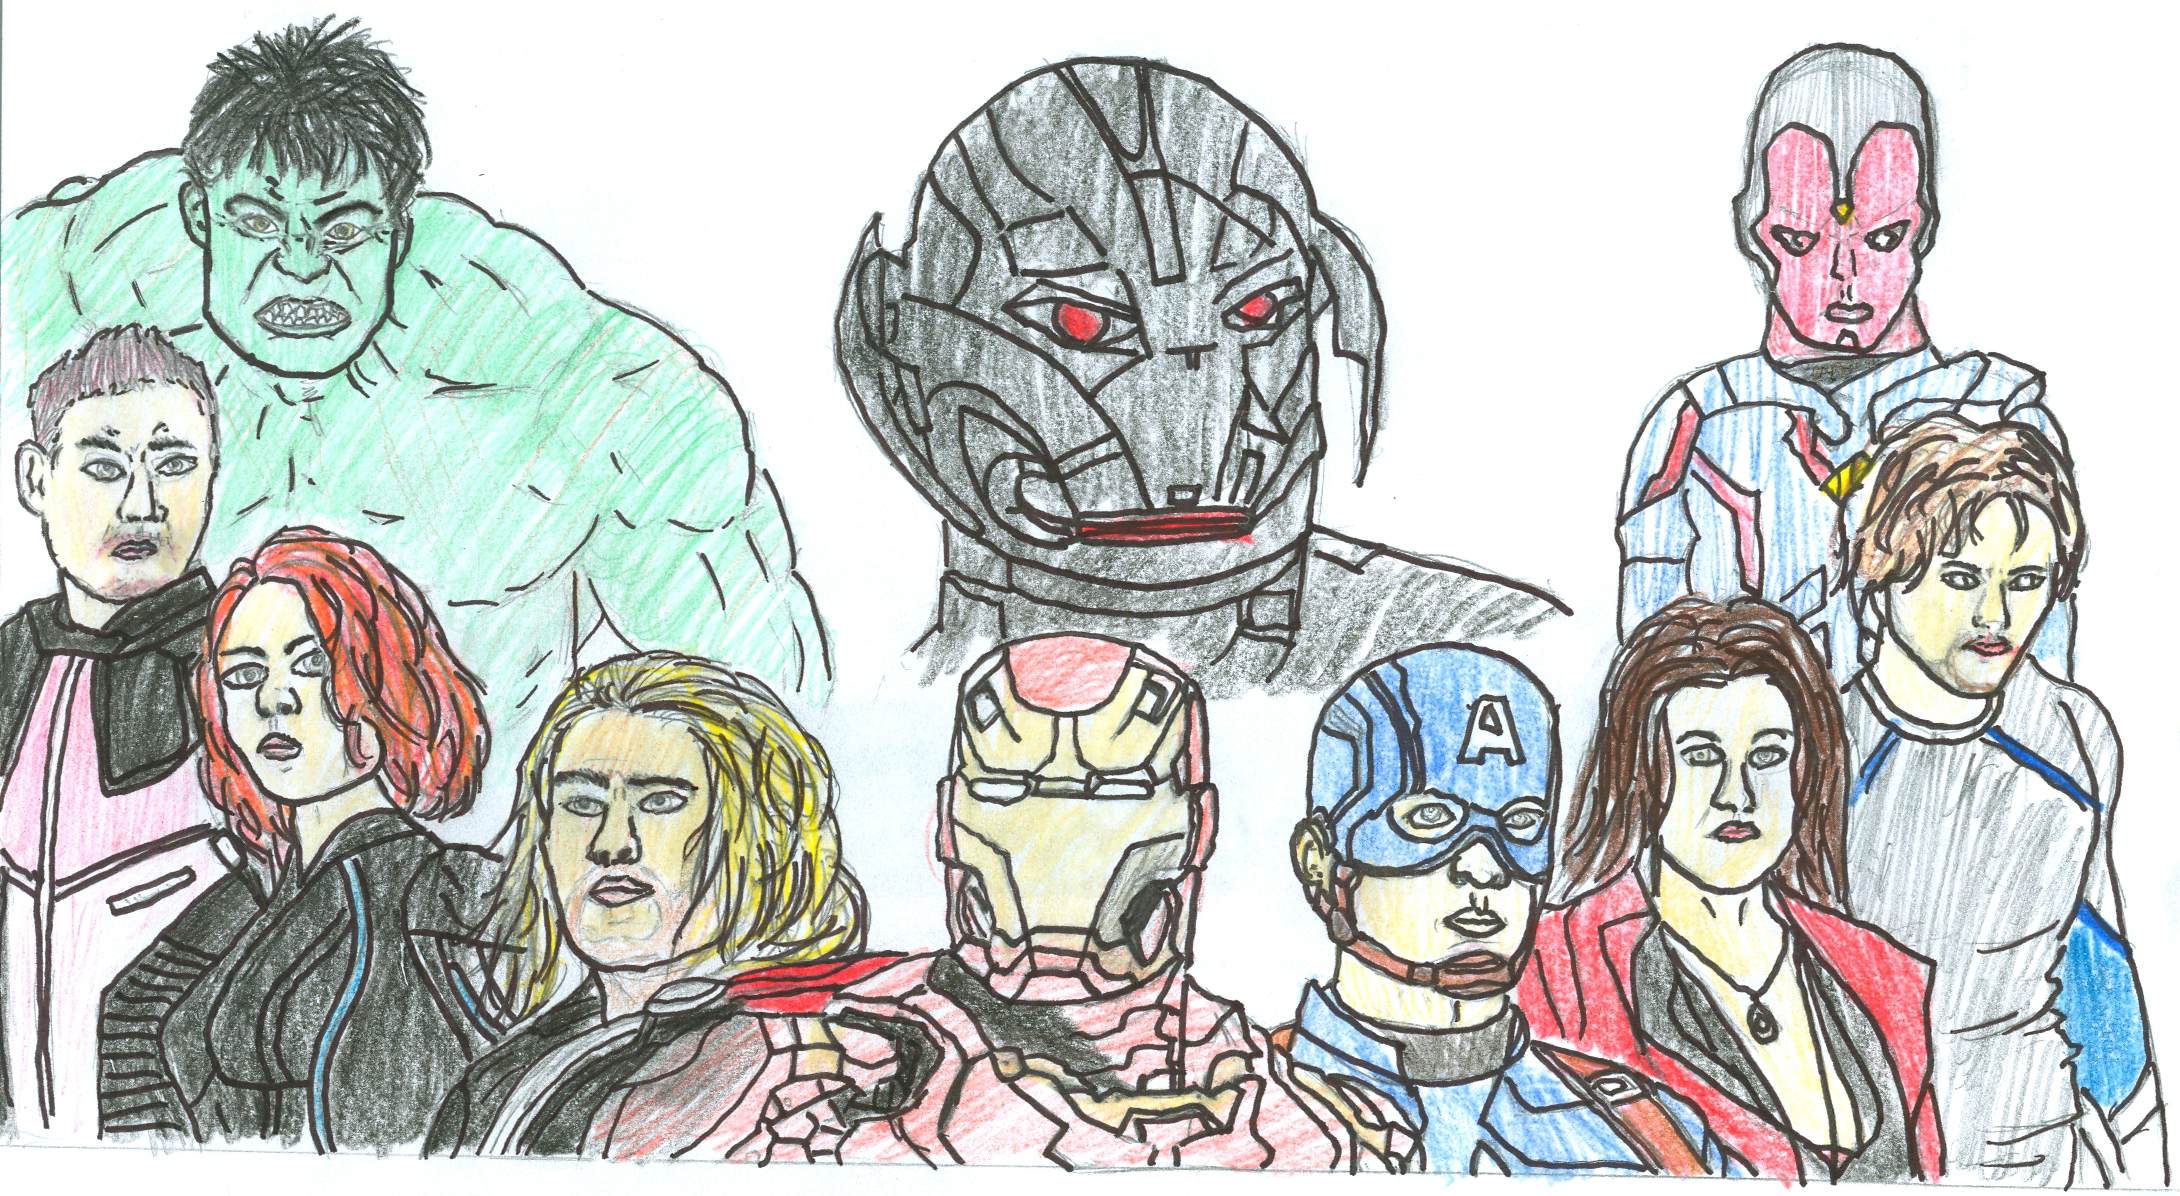 The Avengers team up against Ultron in the new movie. Graphic by Neo Diesta.